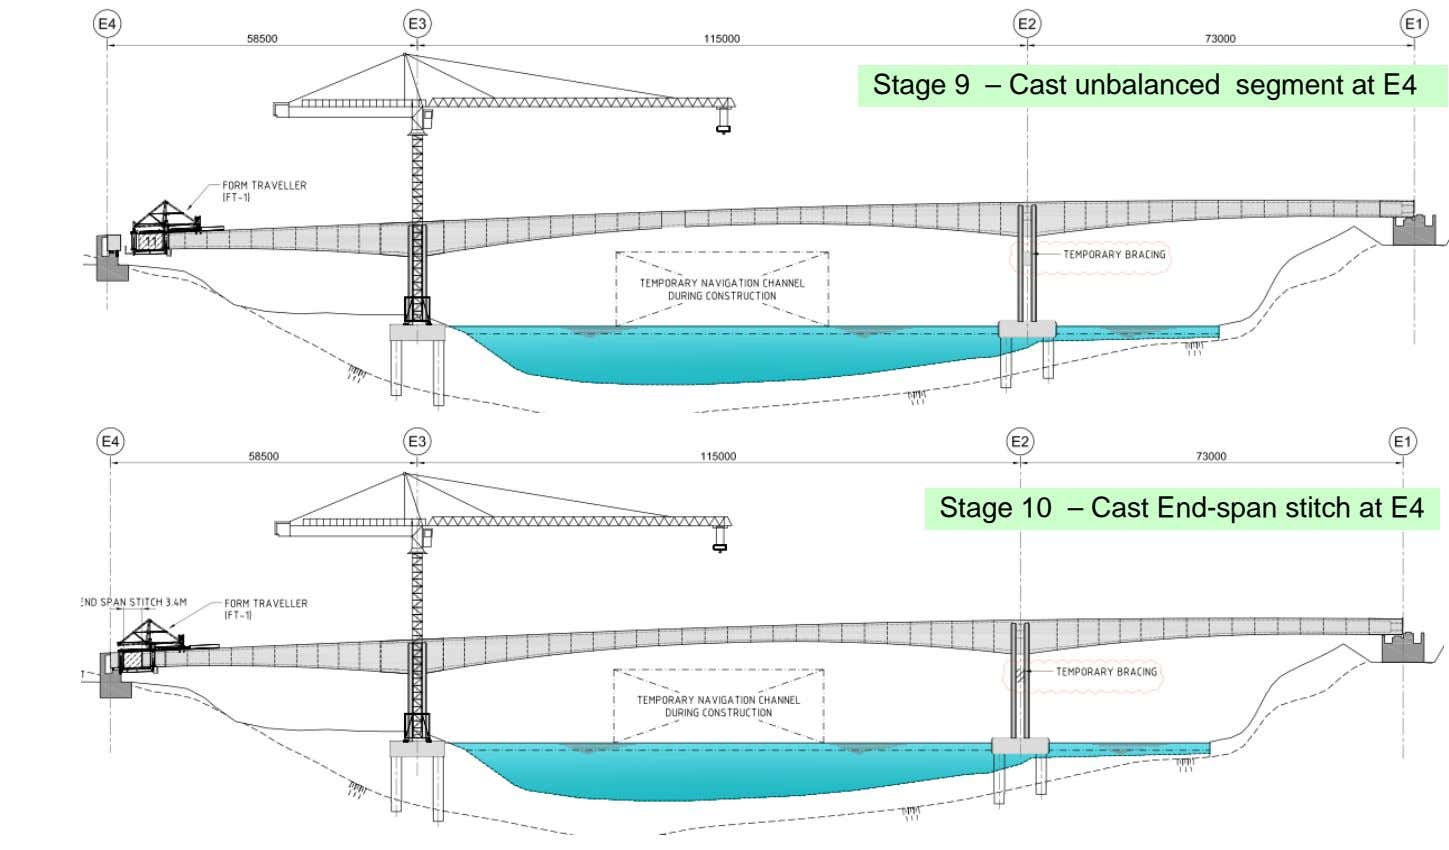 Stage 9 – Cast unbalanced segment at E4 Stage 10 – Cast End-span stitch at